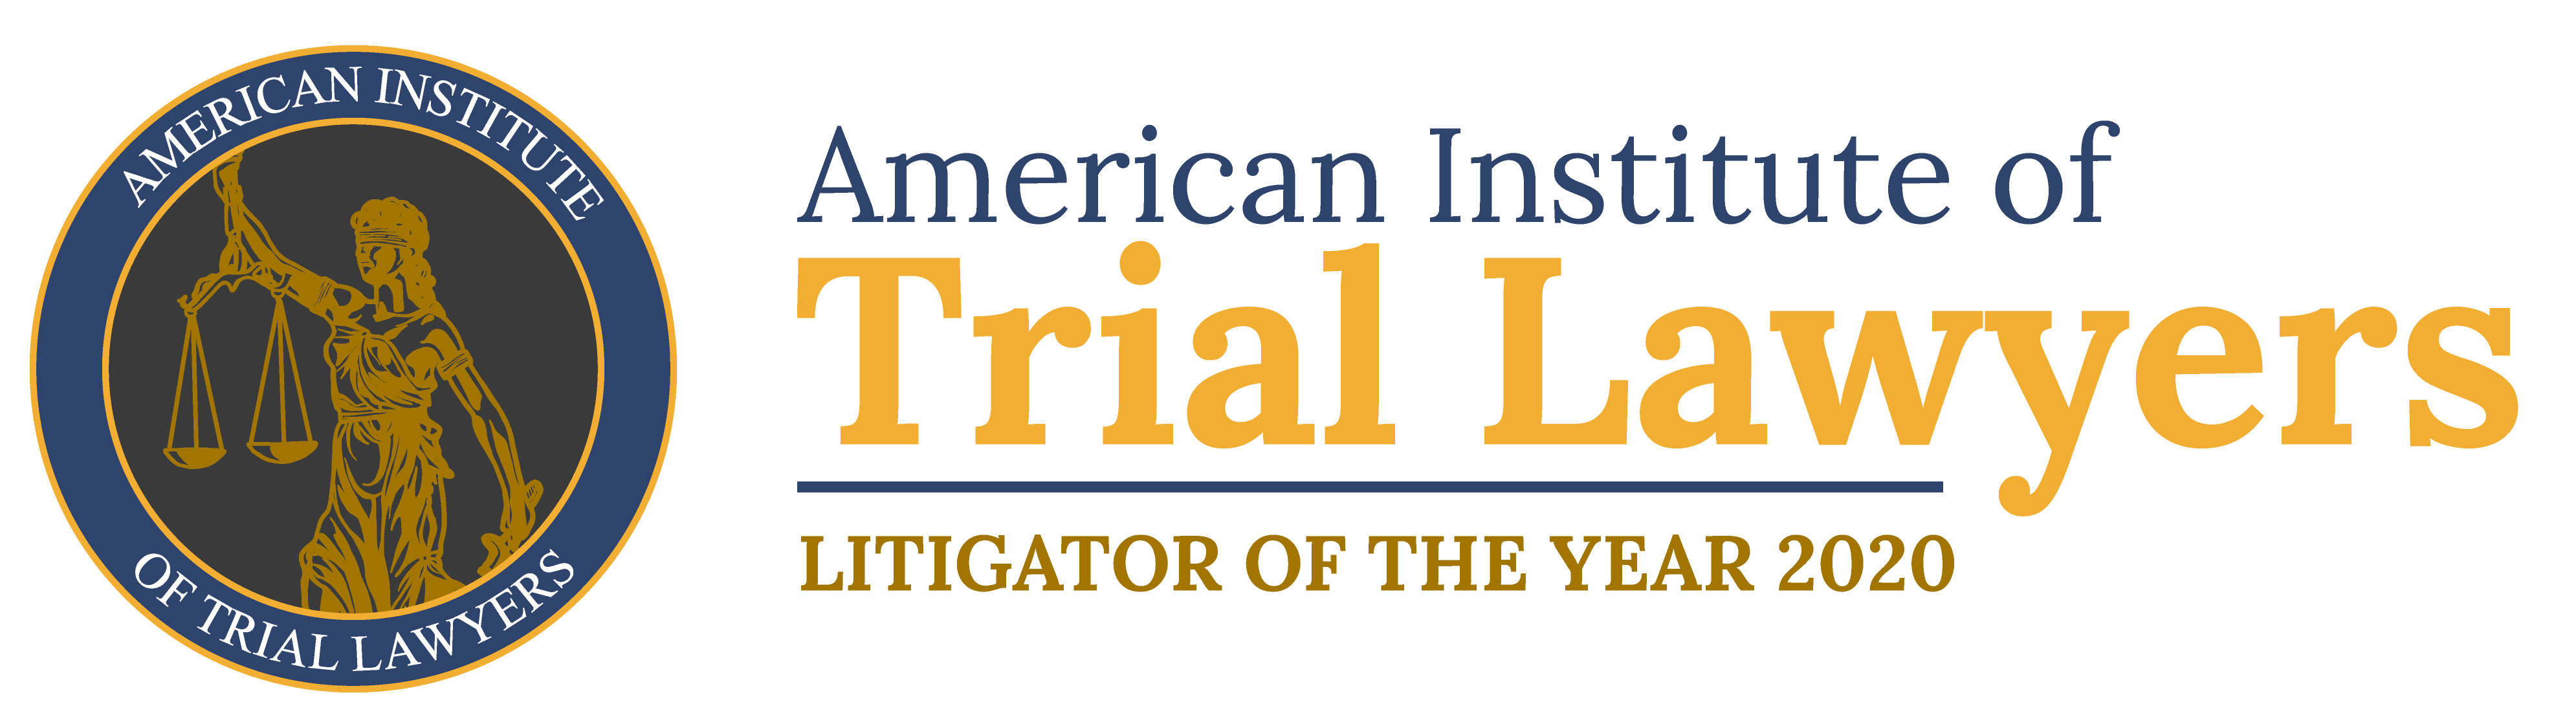 Litigator-of-the-Year-20 (1)